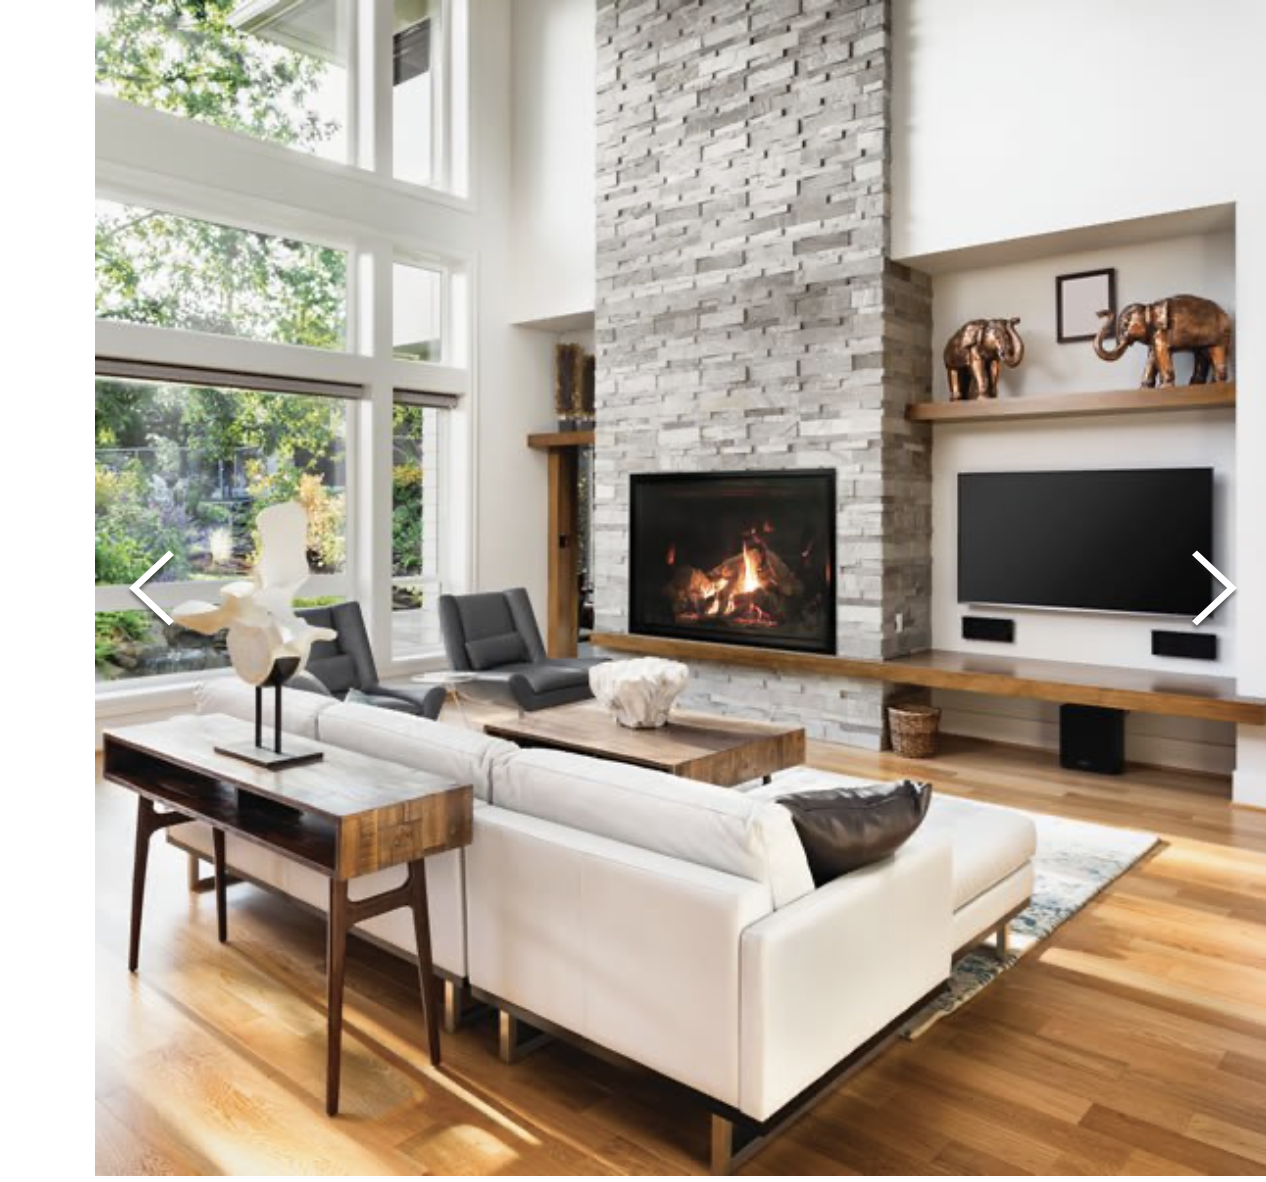 Empire Rushmore Direct Vent Fireplace 50 In 2020 Living